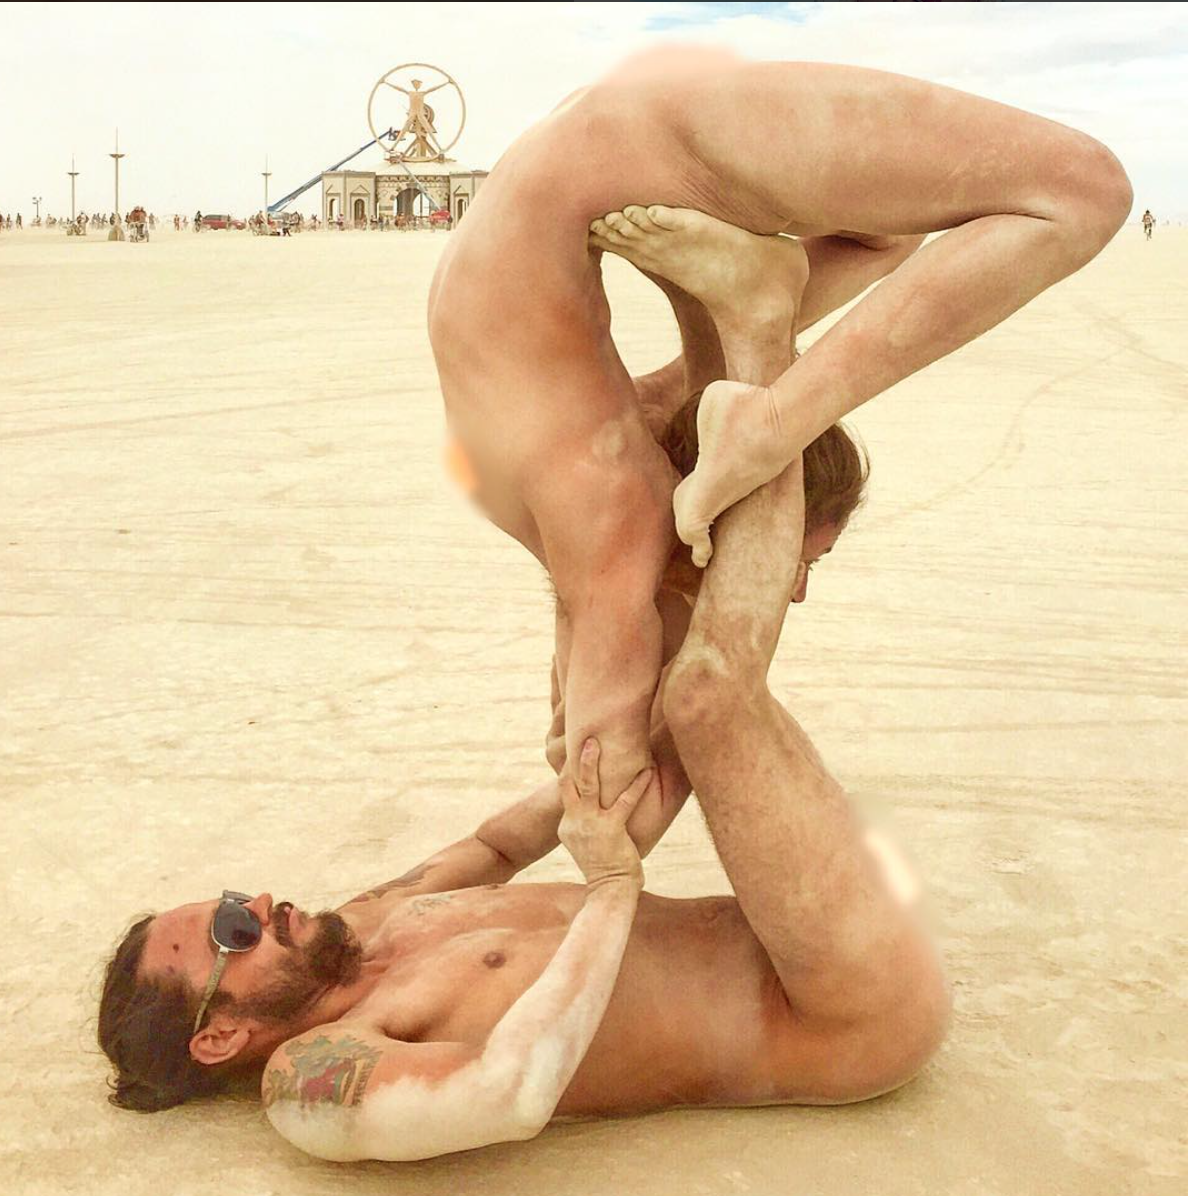 Naked Performance art on the Playa at Burning Man